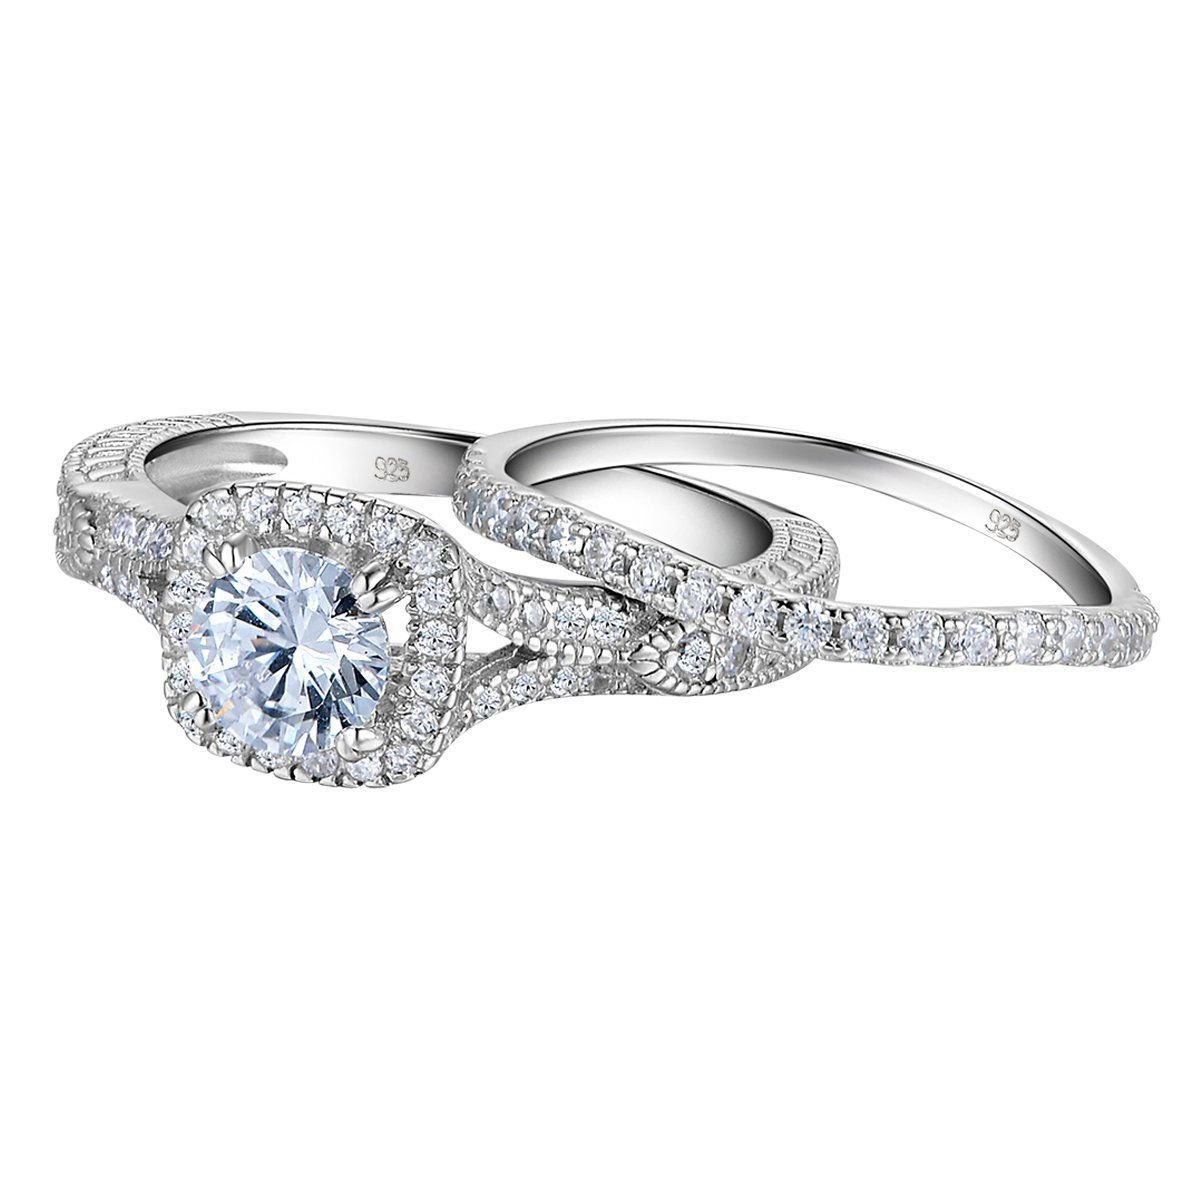 Newshe Vintage Wedding Engagement Ring Set For Women 925 Sterling Silver 1.4ct White AAA Cz Size 7